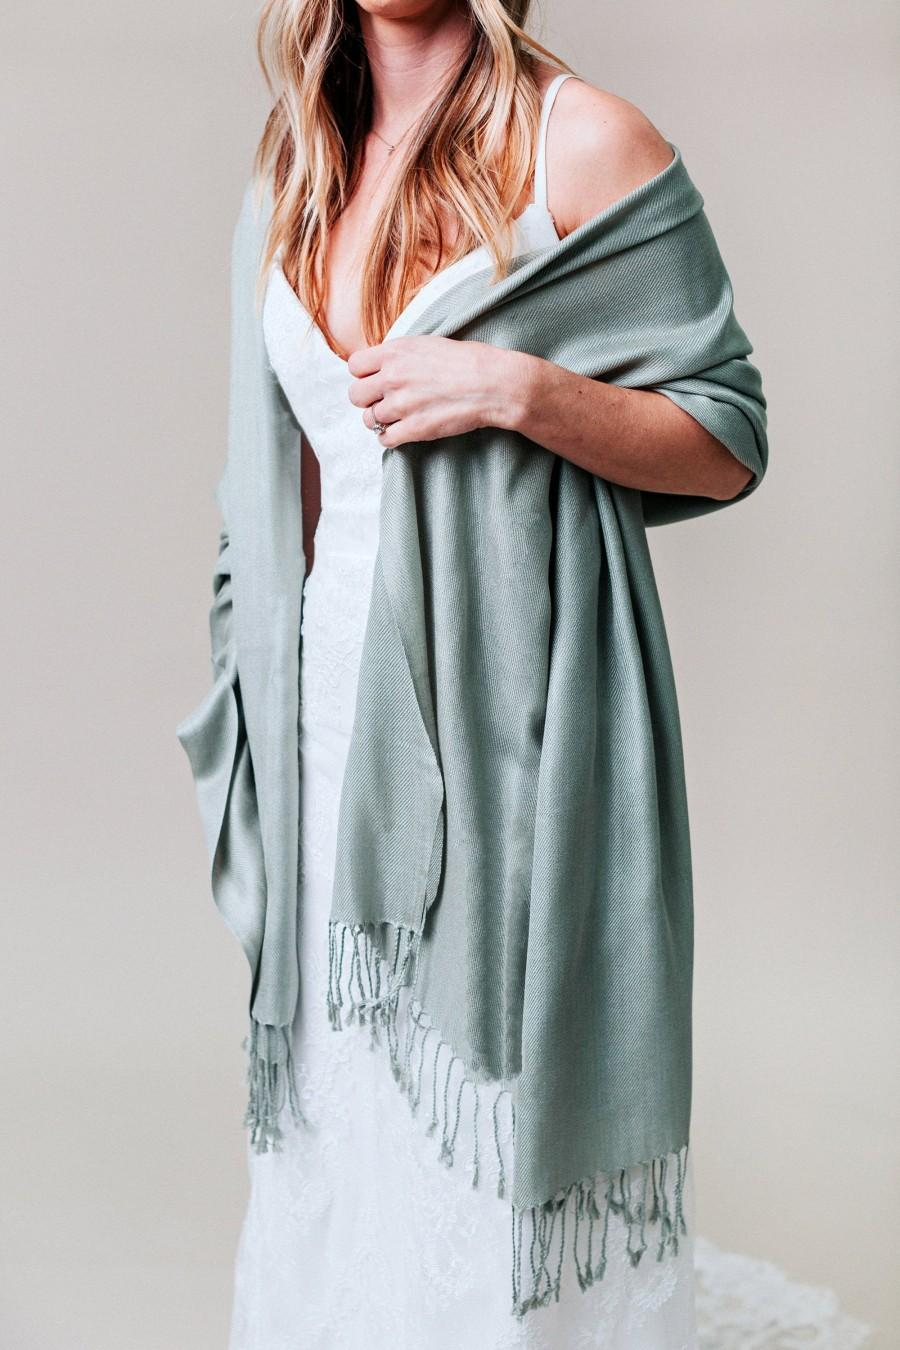 Wedding - Sage Green, Wedding Shawl, Bridesmaid Gift, Pashmina Shawl, Scarf